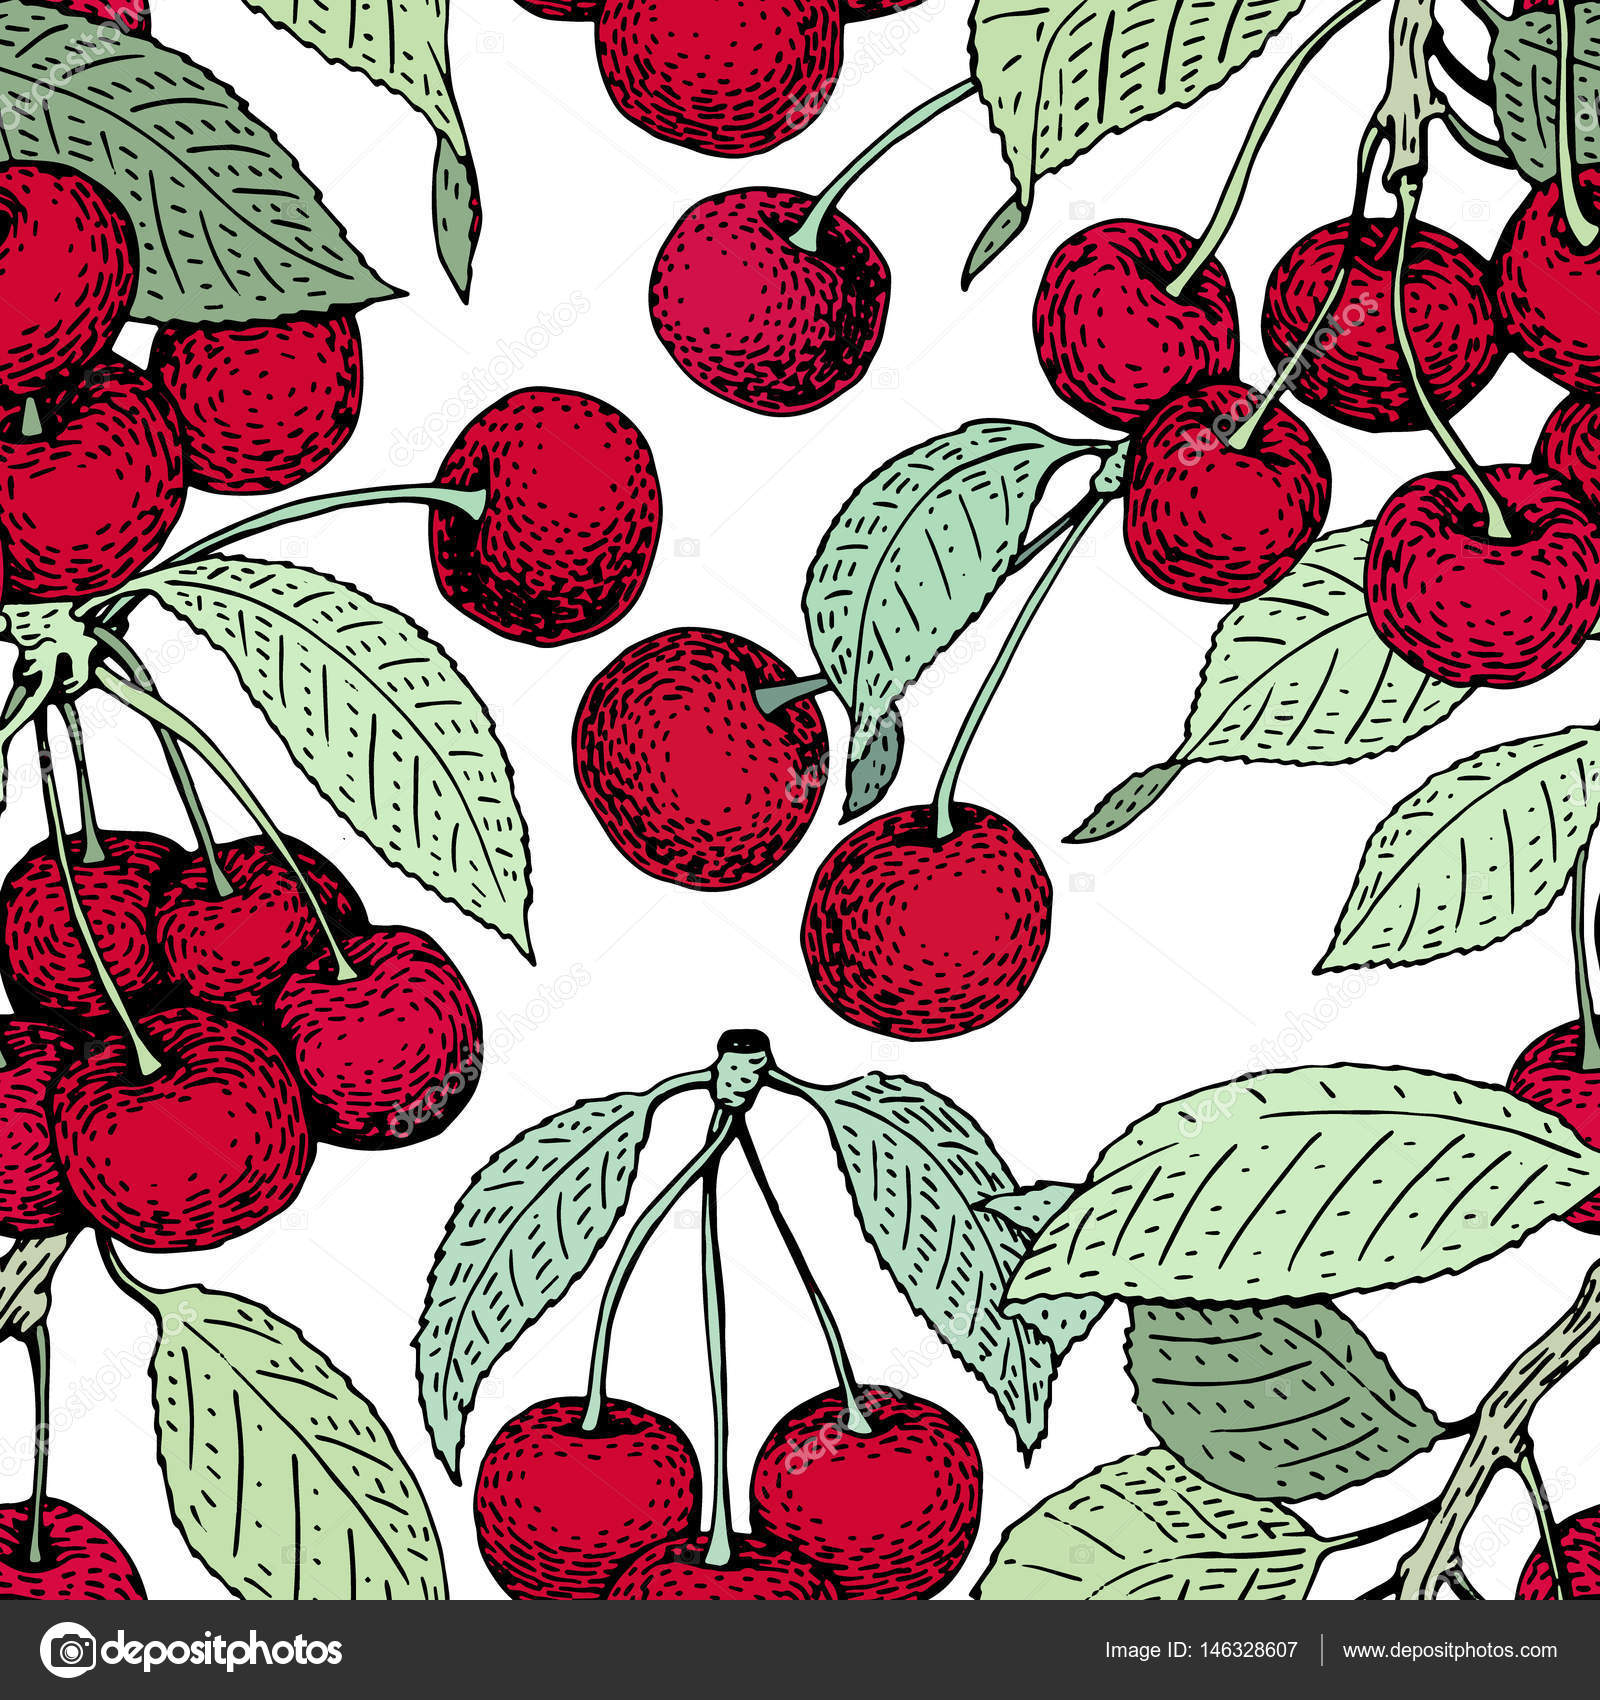 Vector Cherry Seamless Pattern Background Fabric Design Wrapping Paper Cover Retro Hand Drawn Illustration By Chipurkolubovrambler